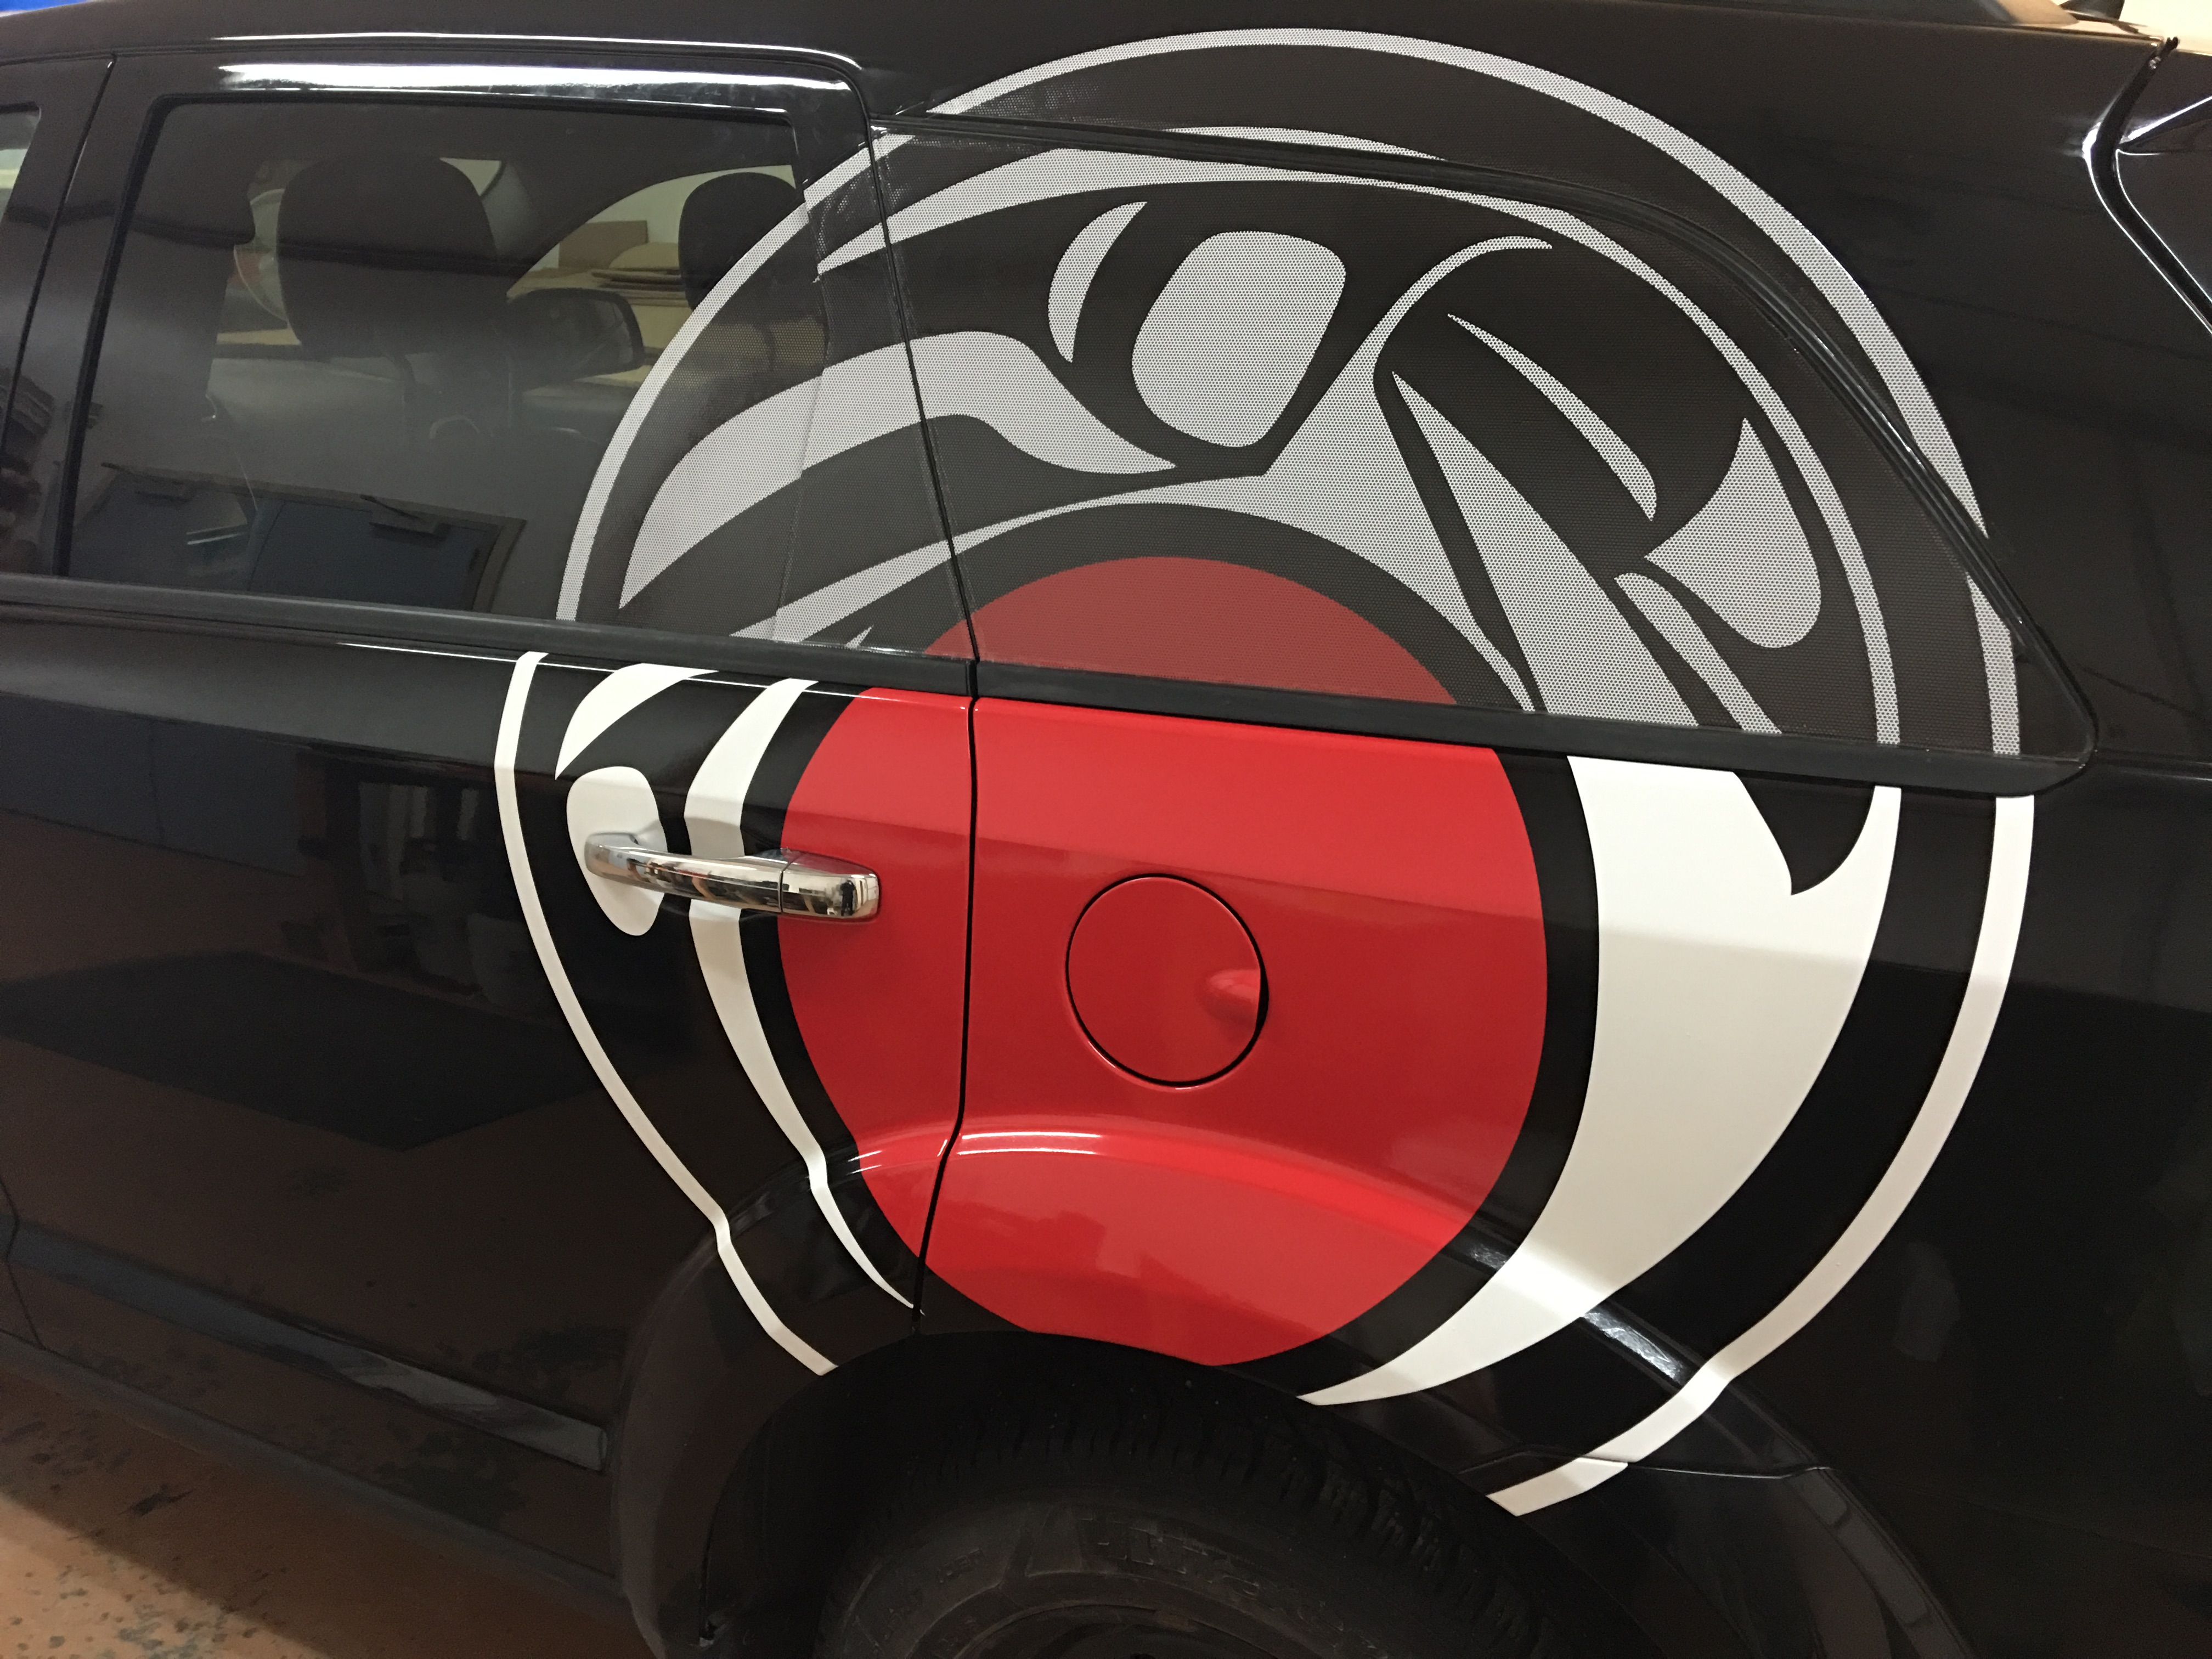 Vehicle decal with perforated window vinyl